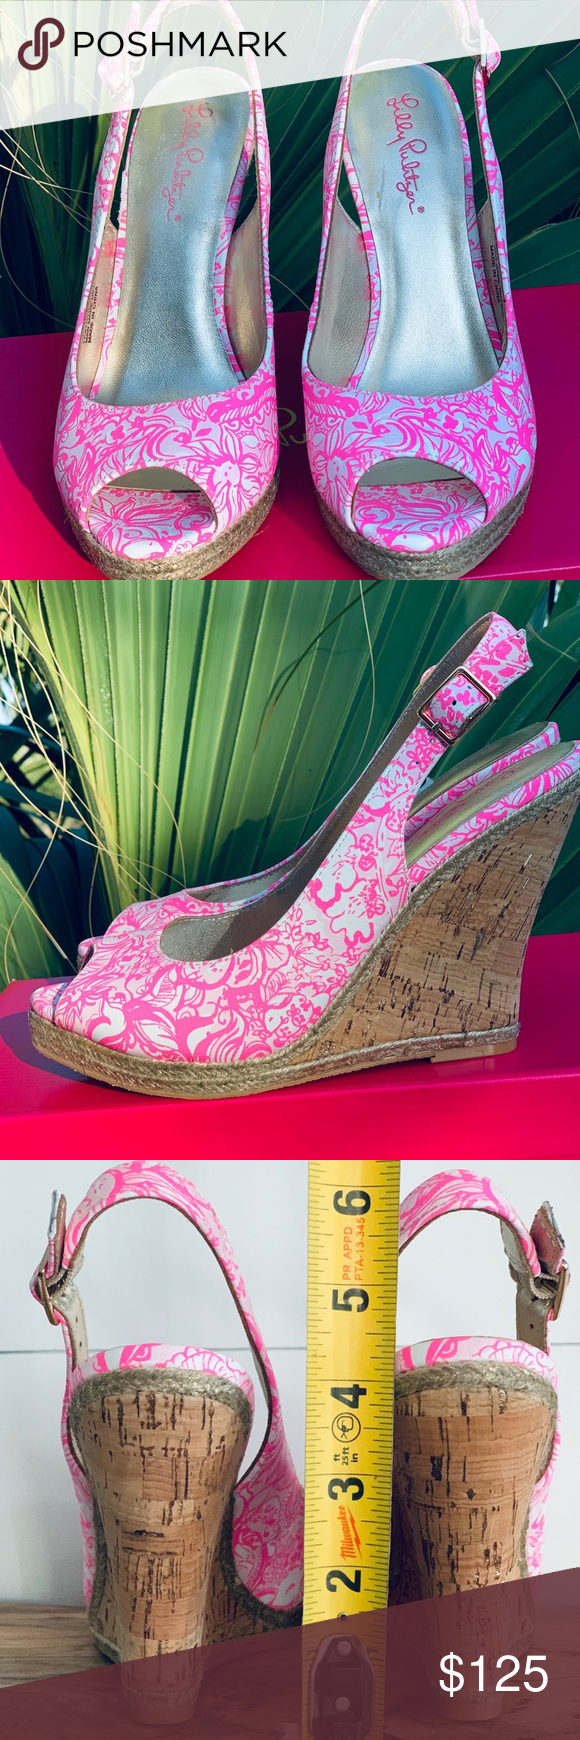 Lilly Pulitzer Krisie Wedge Pink Tropics 8M NWT Features Color Pink Tropics #696 Style #827 Leather upper, man made outsole Bottom of soles have fun sanddollar pattern Comes with signature Lilly Pulitzer pink shoe box  Condition - NWT  Measurements Size 8M Heel Height 4